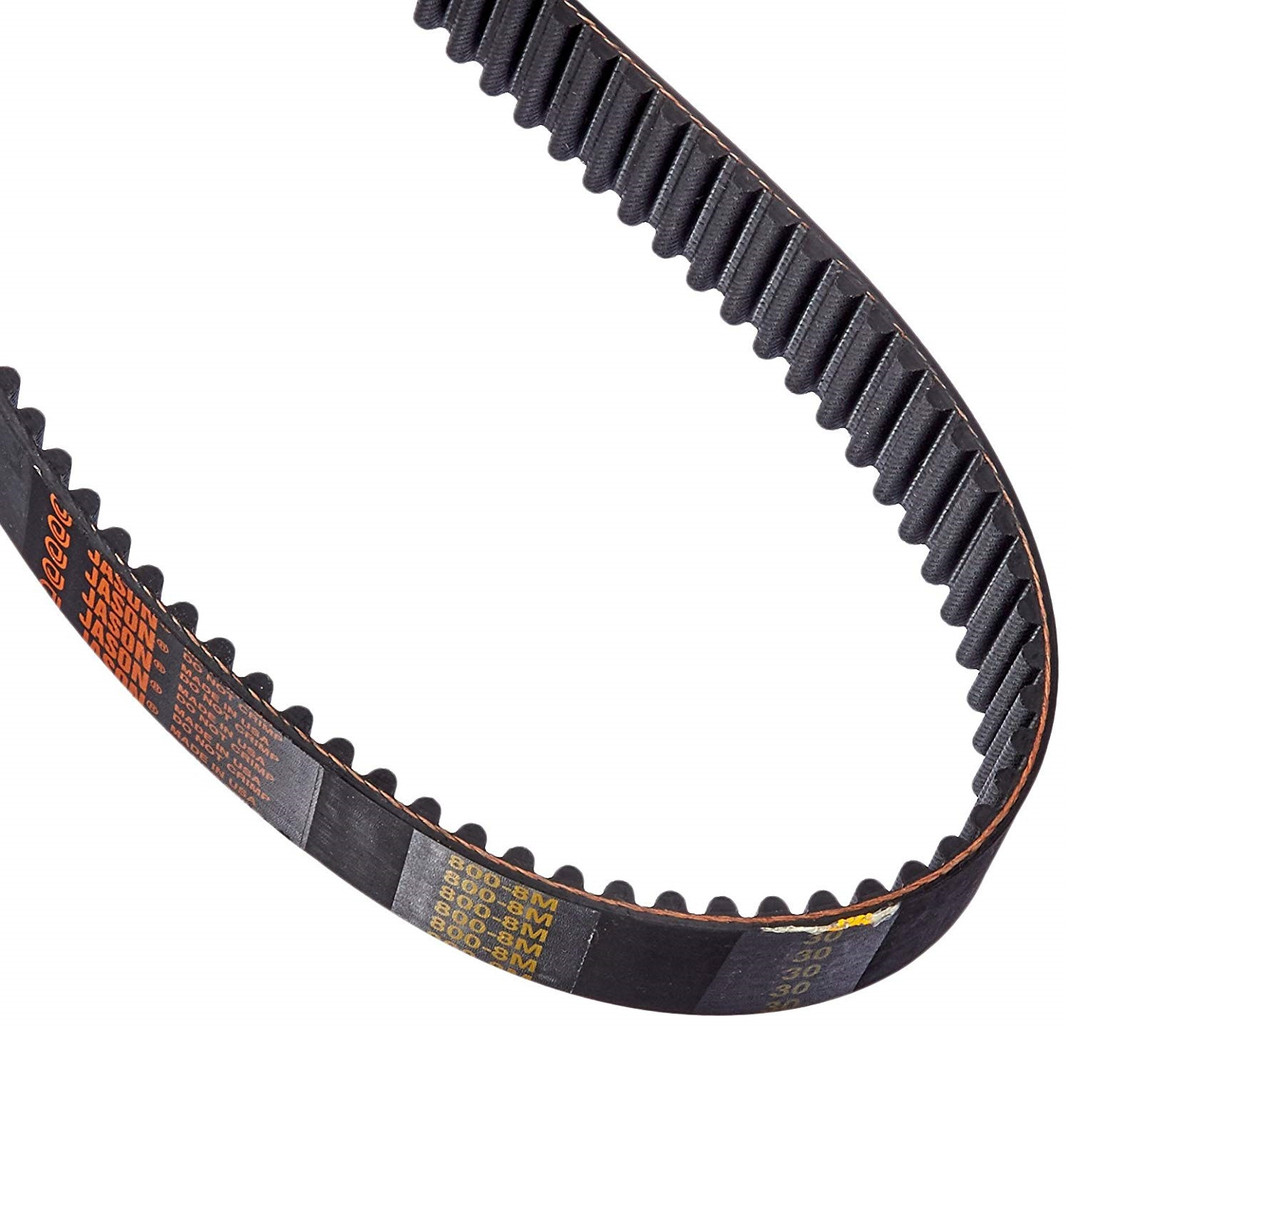 Jason Industrial 460-5M-09 5mm tooth profile HTB timing belt